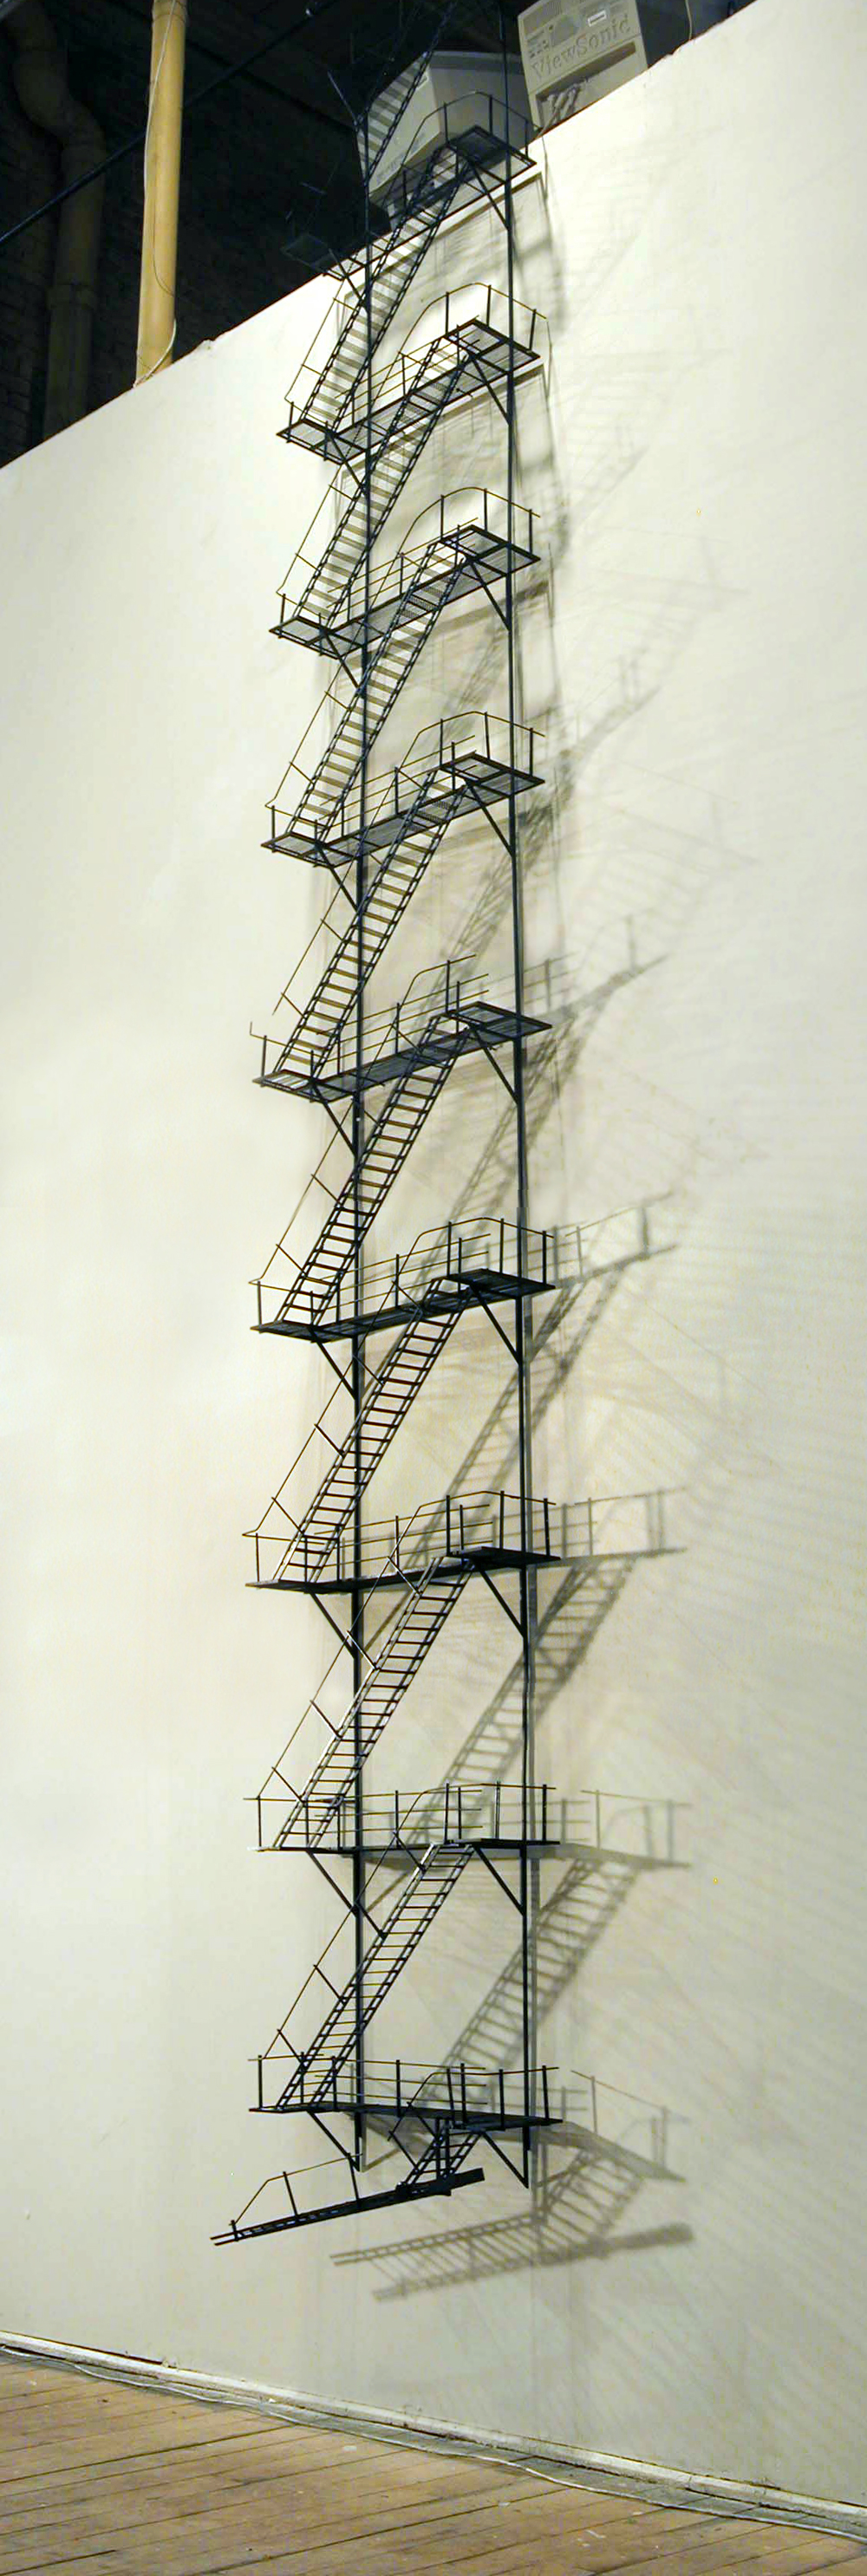 05_Tom Lauerman, Fire Escape (Detail), 2004, wood, metal, plastic, paint, 18x4x180, private collection.jpg